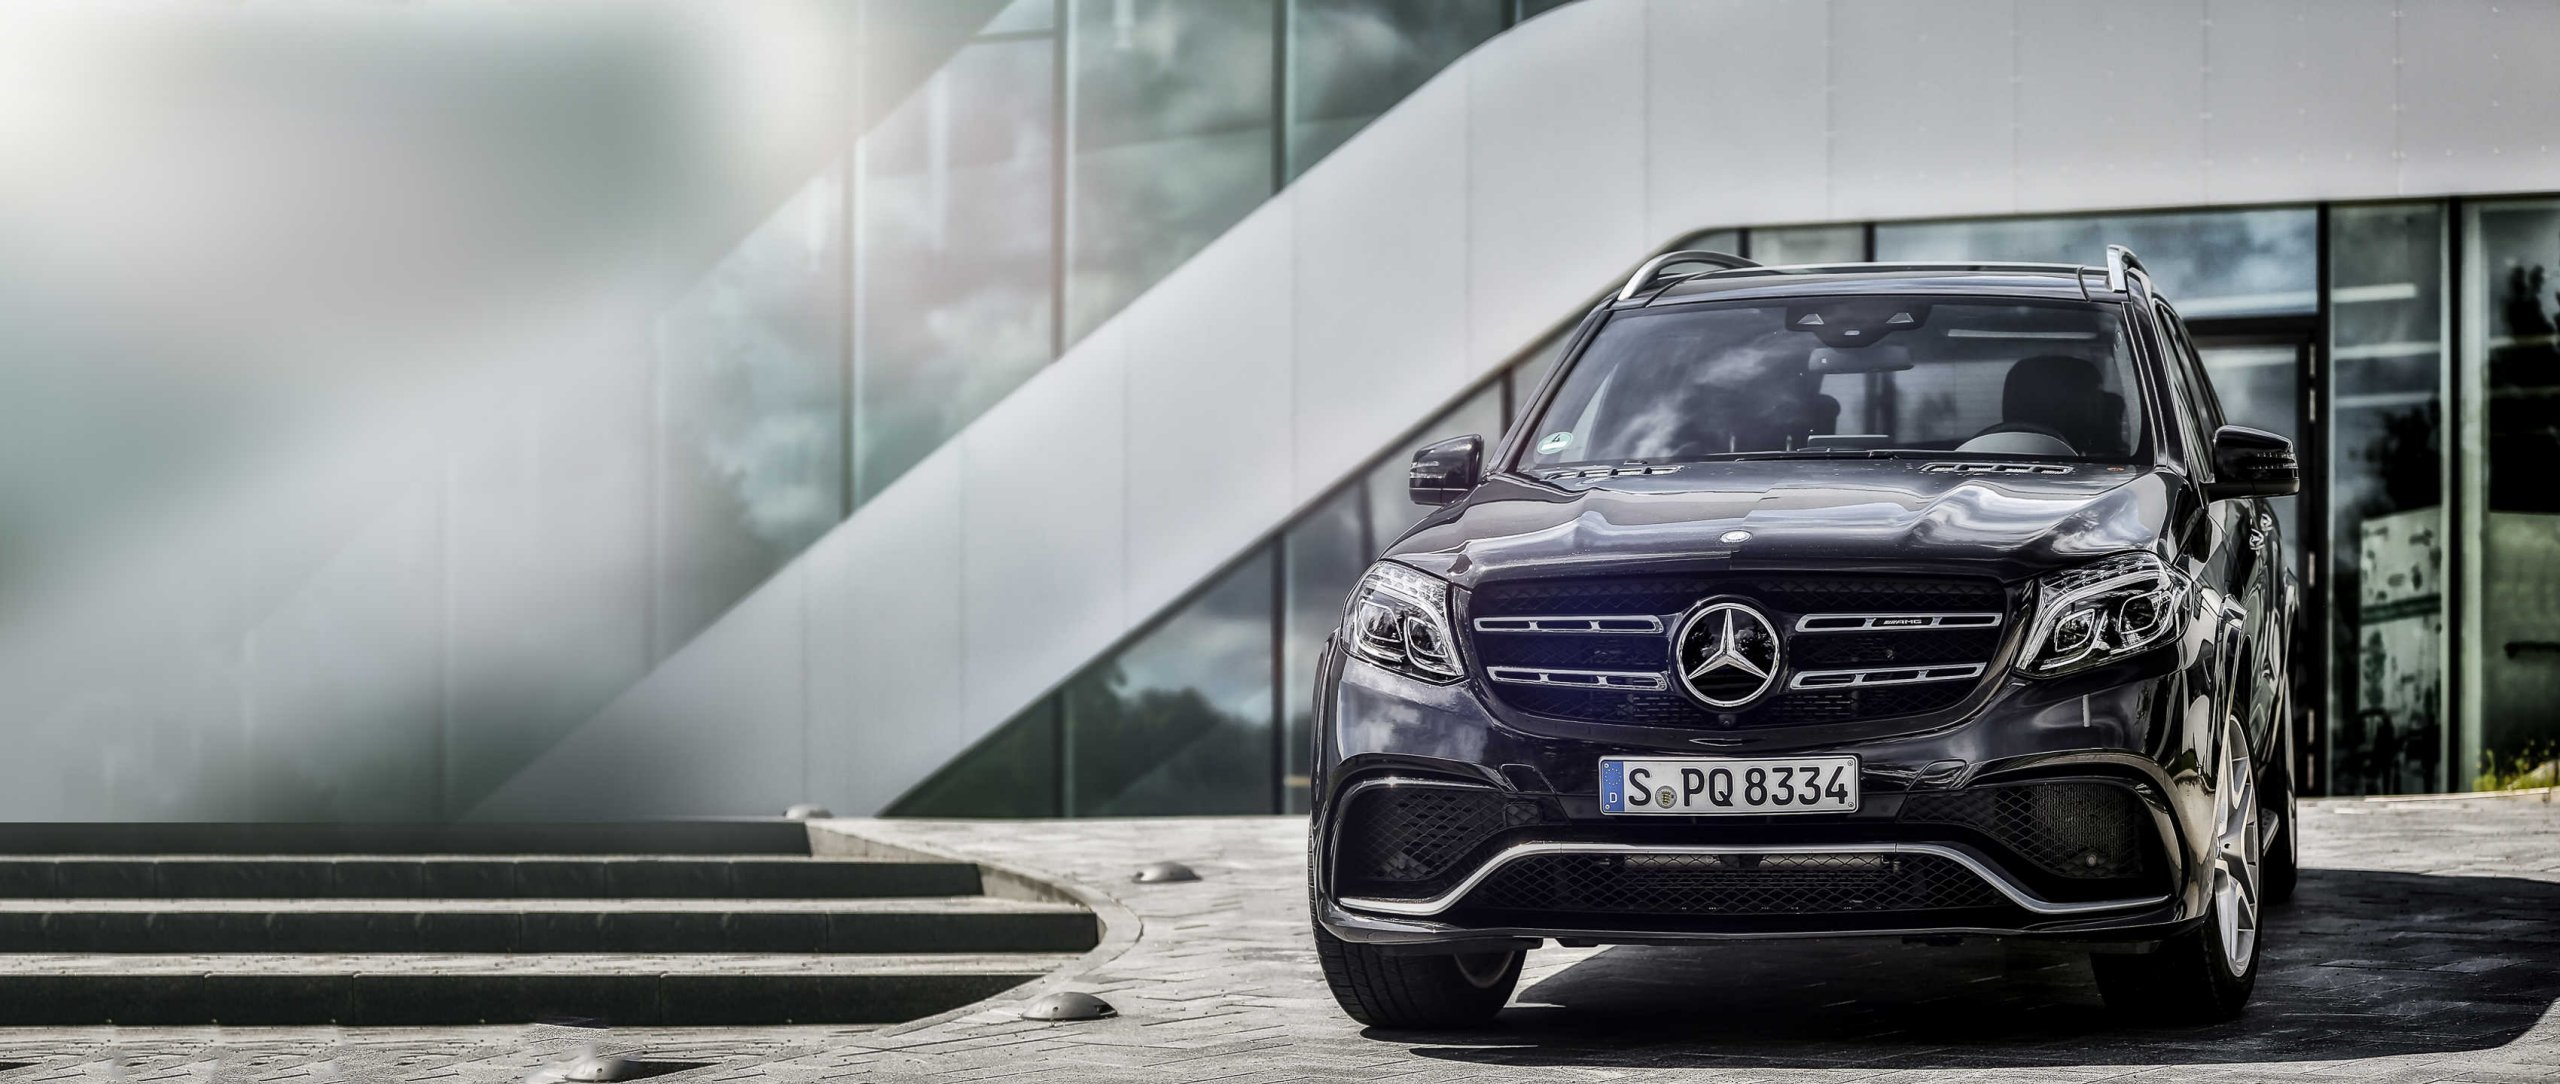 Mercedes-AMG GLS 63 4MATIC (X 166): front view in front of glass building.